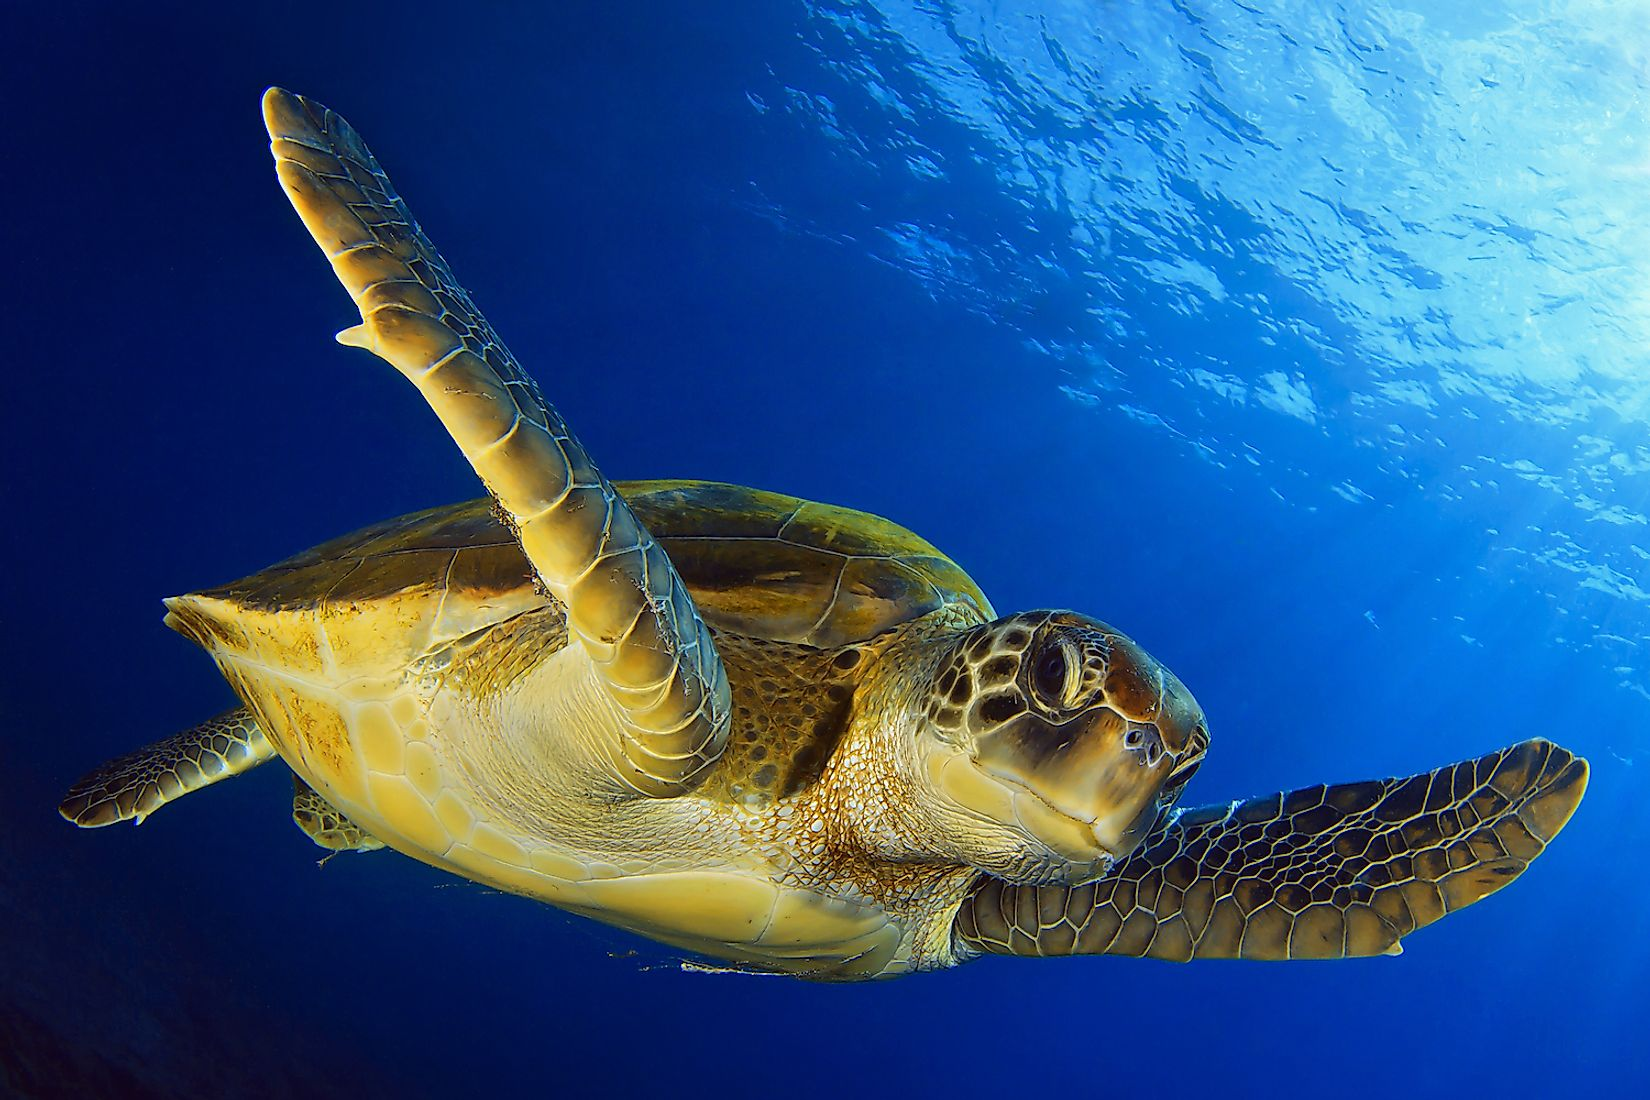 A Green Turtle. Image credit: David Carbo/Shutterstock.com